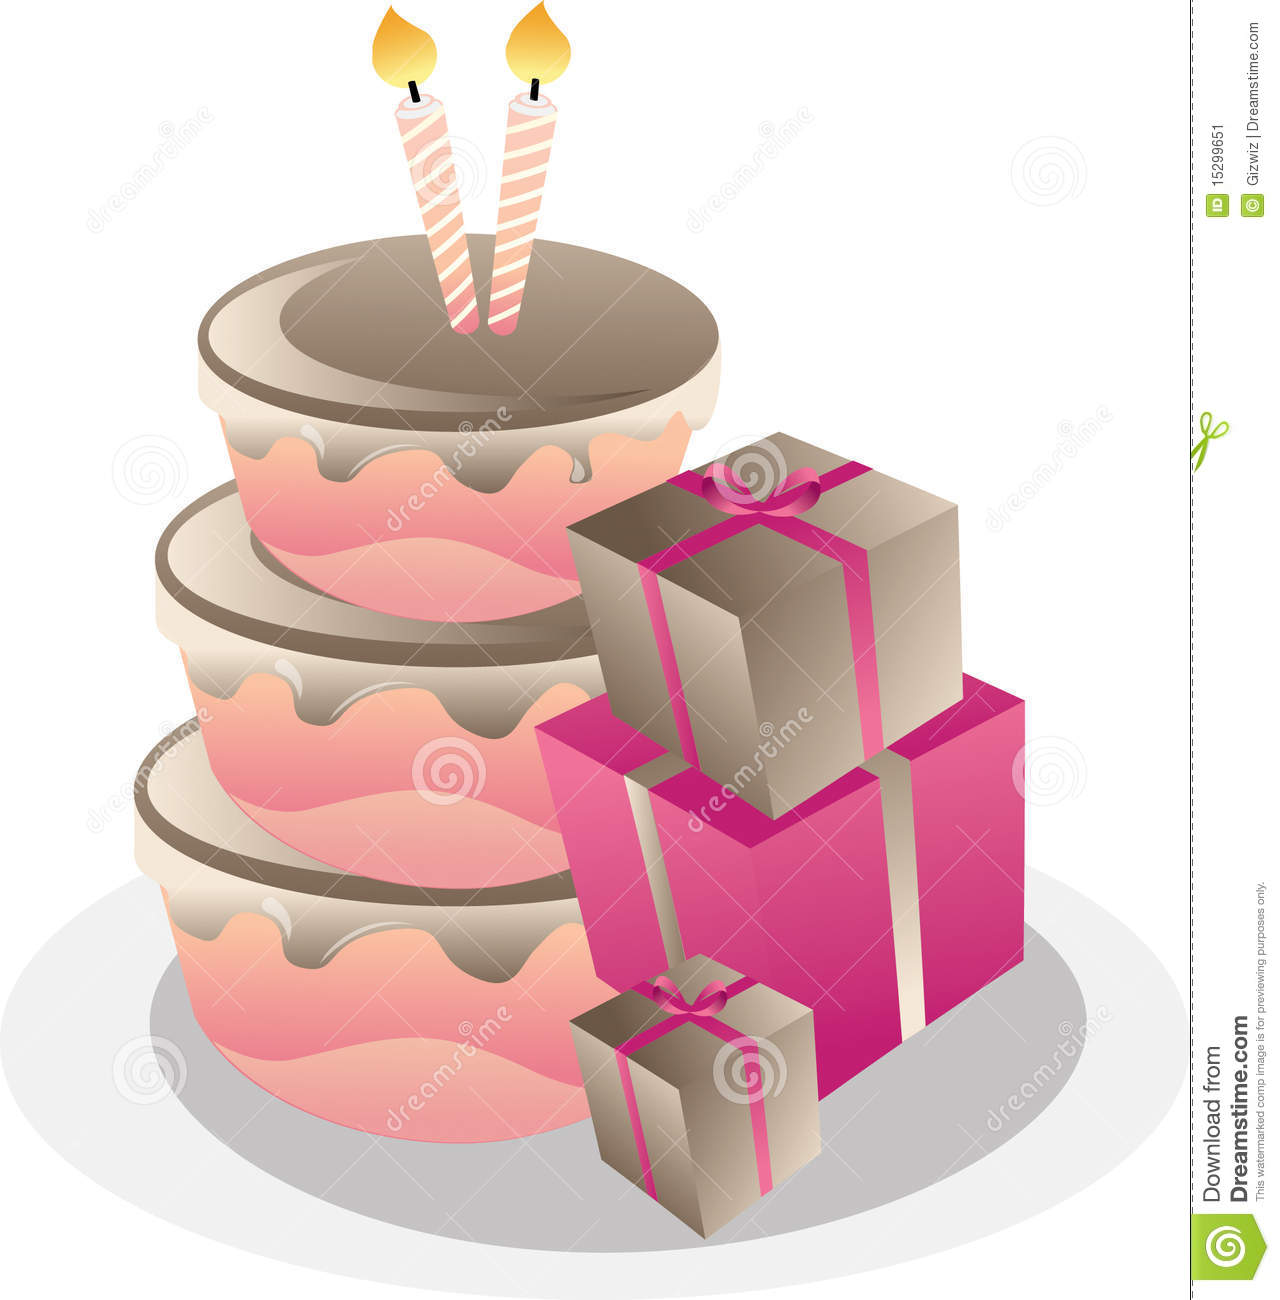 birthday gift cake image ; birthday-cake-gift-boxes-15299651